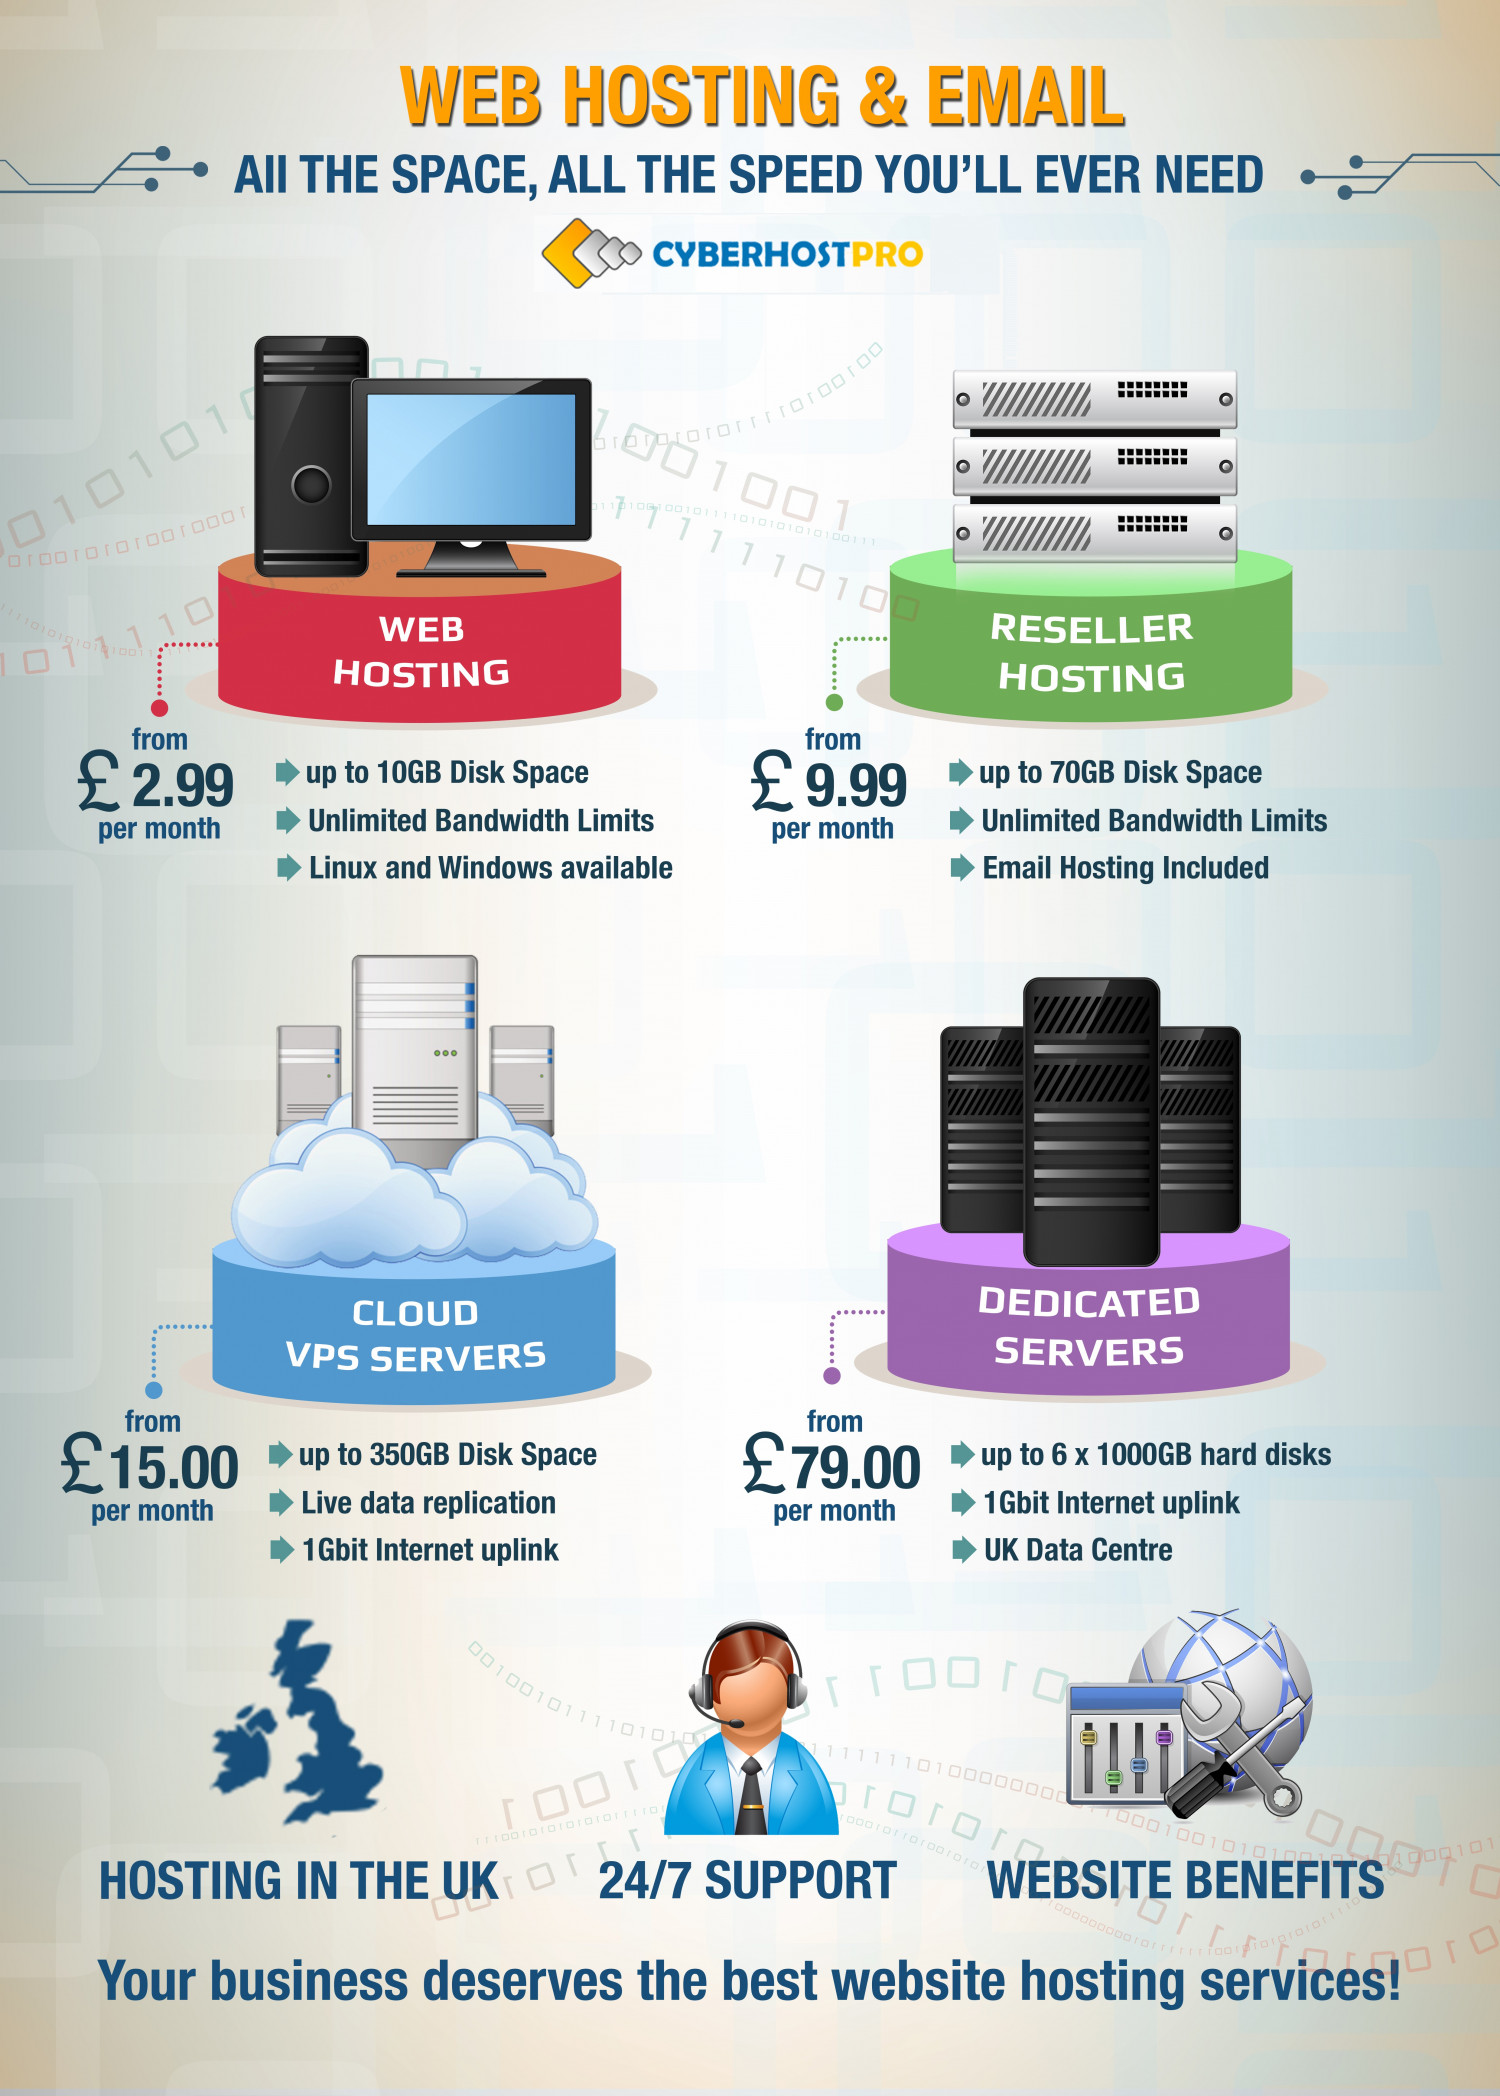 Cyber Host Pro Infographic